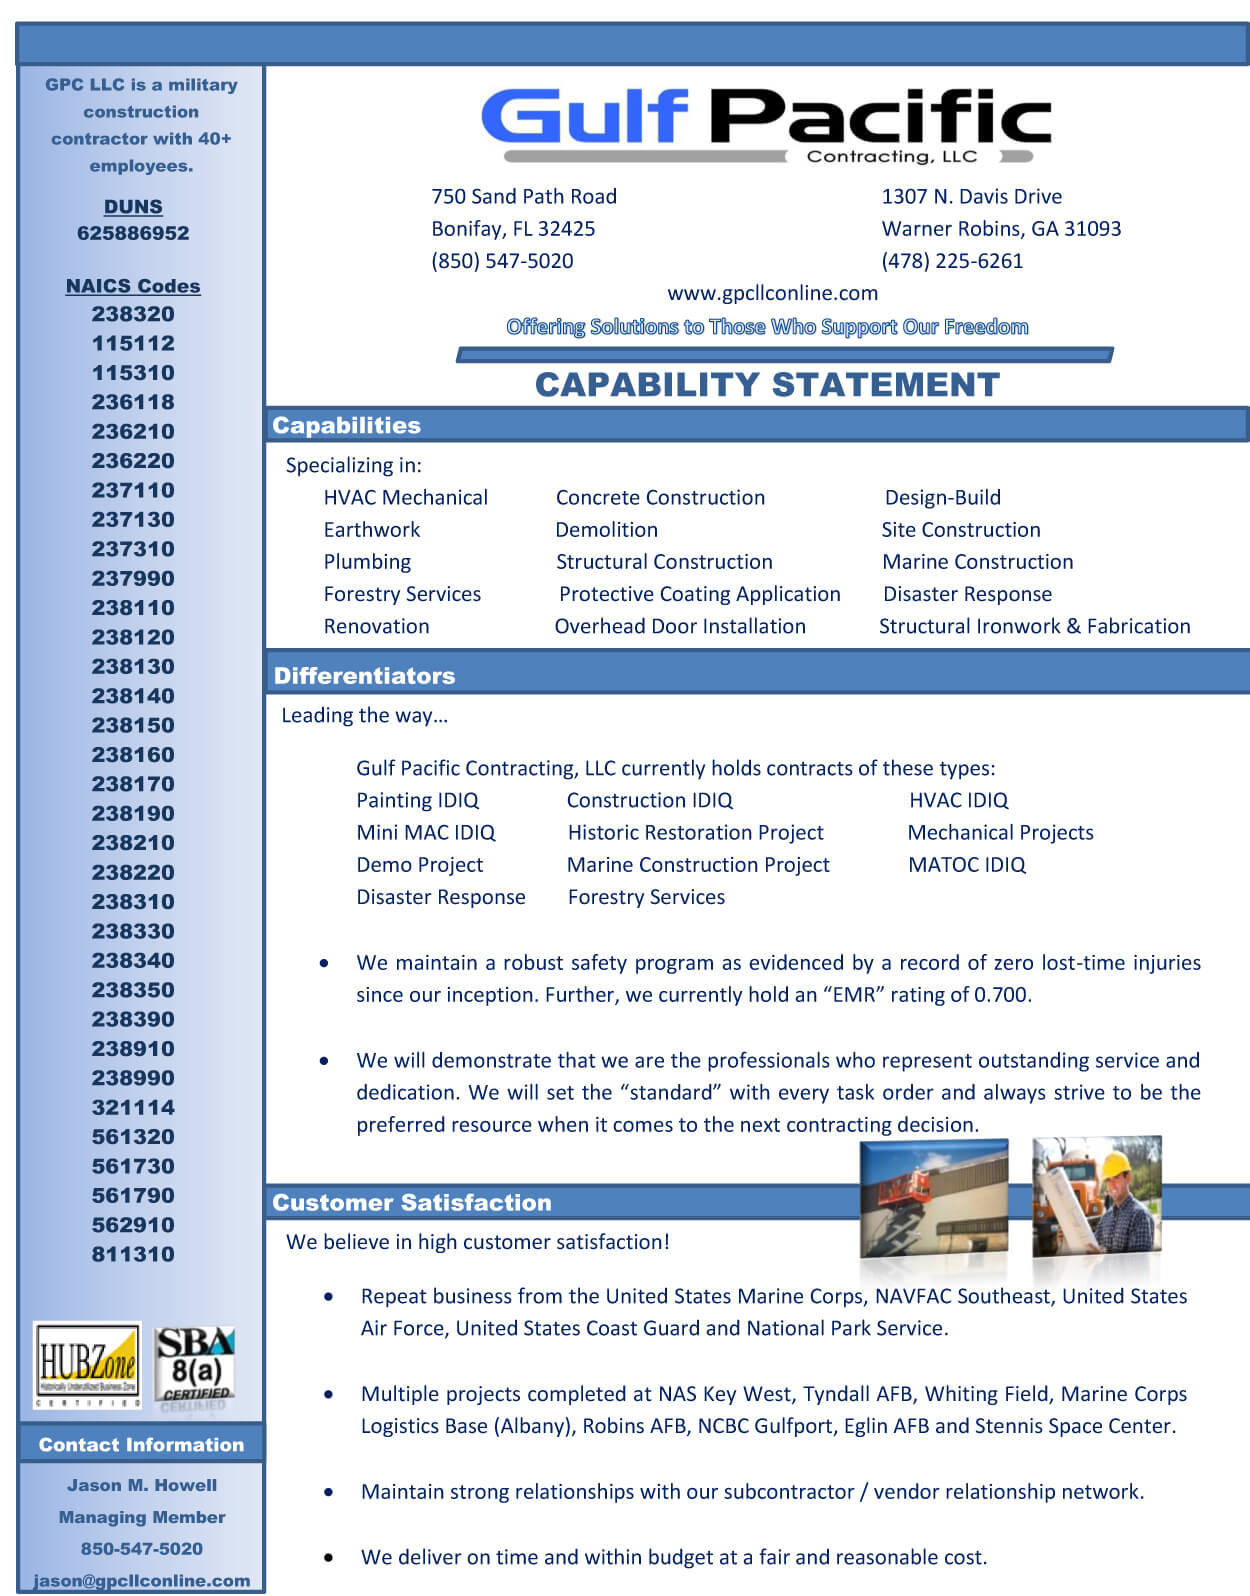 Capability Statement Gulf Pacific Contracting Llc